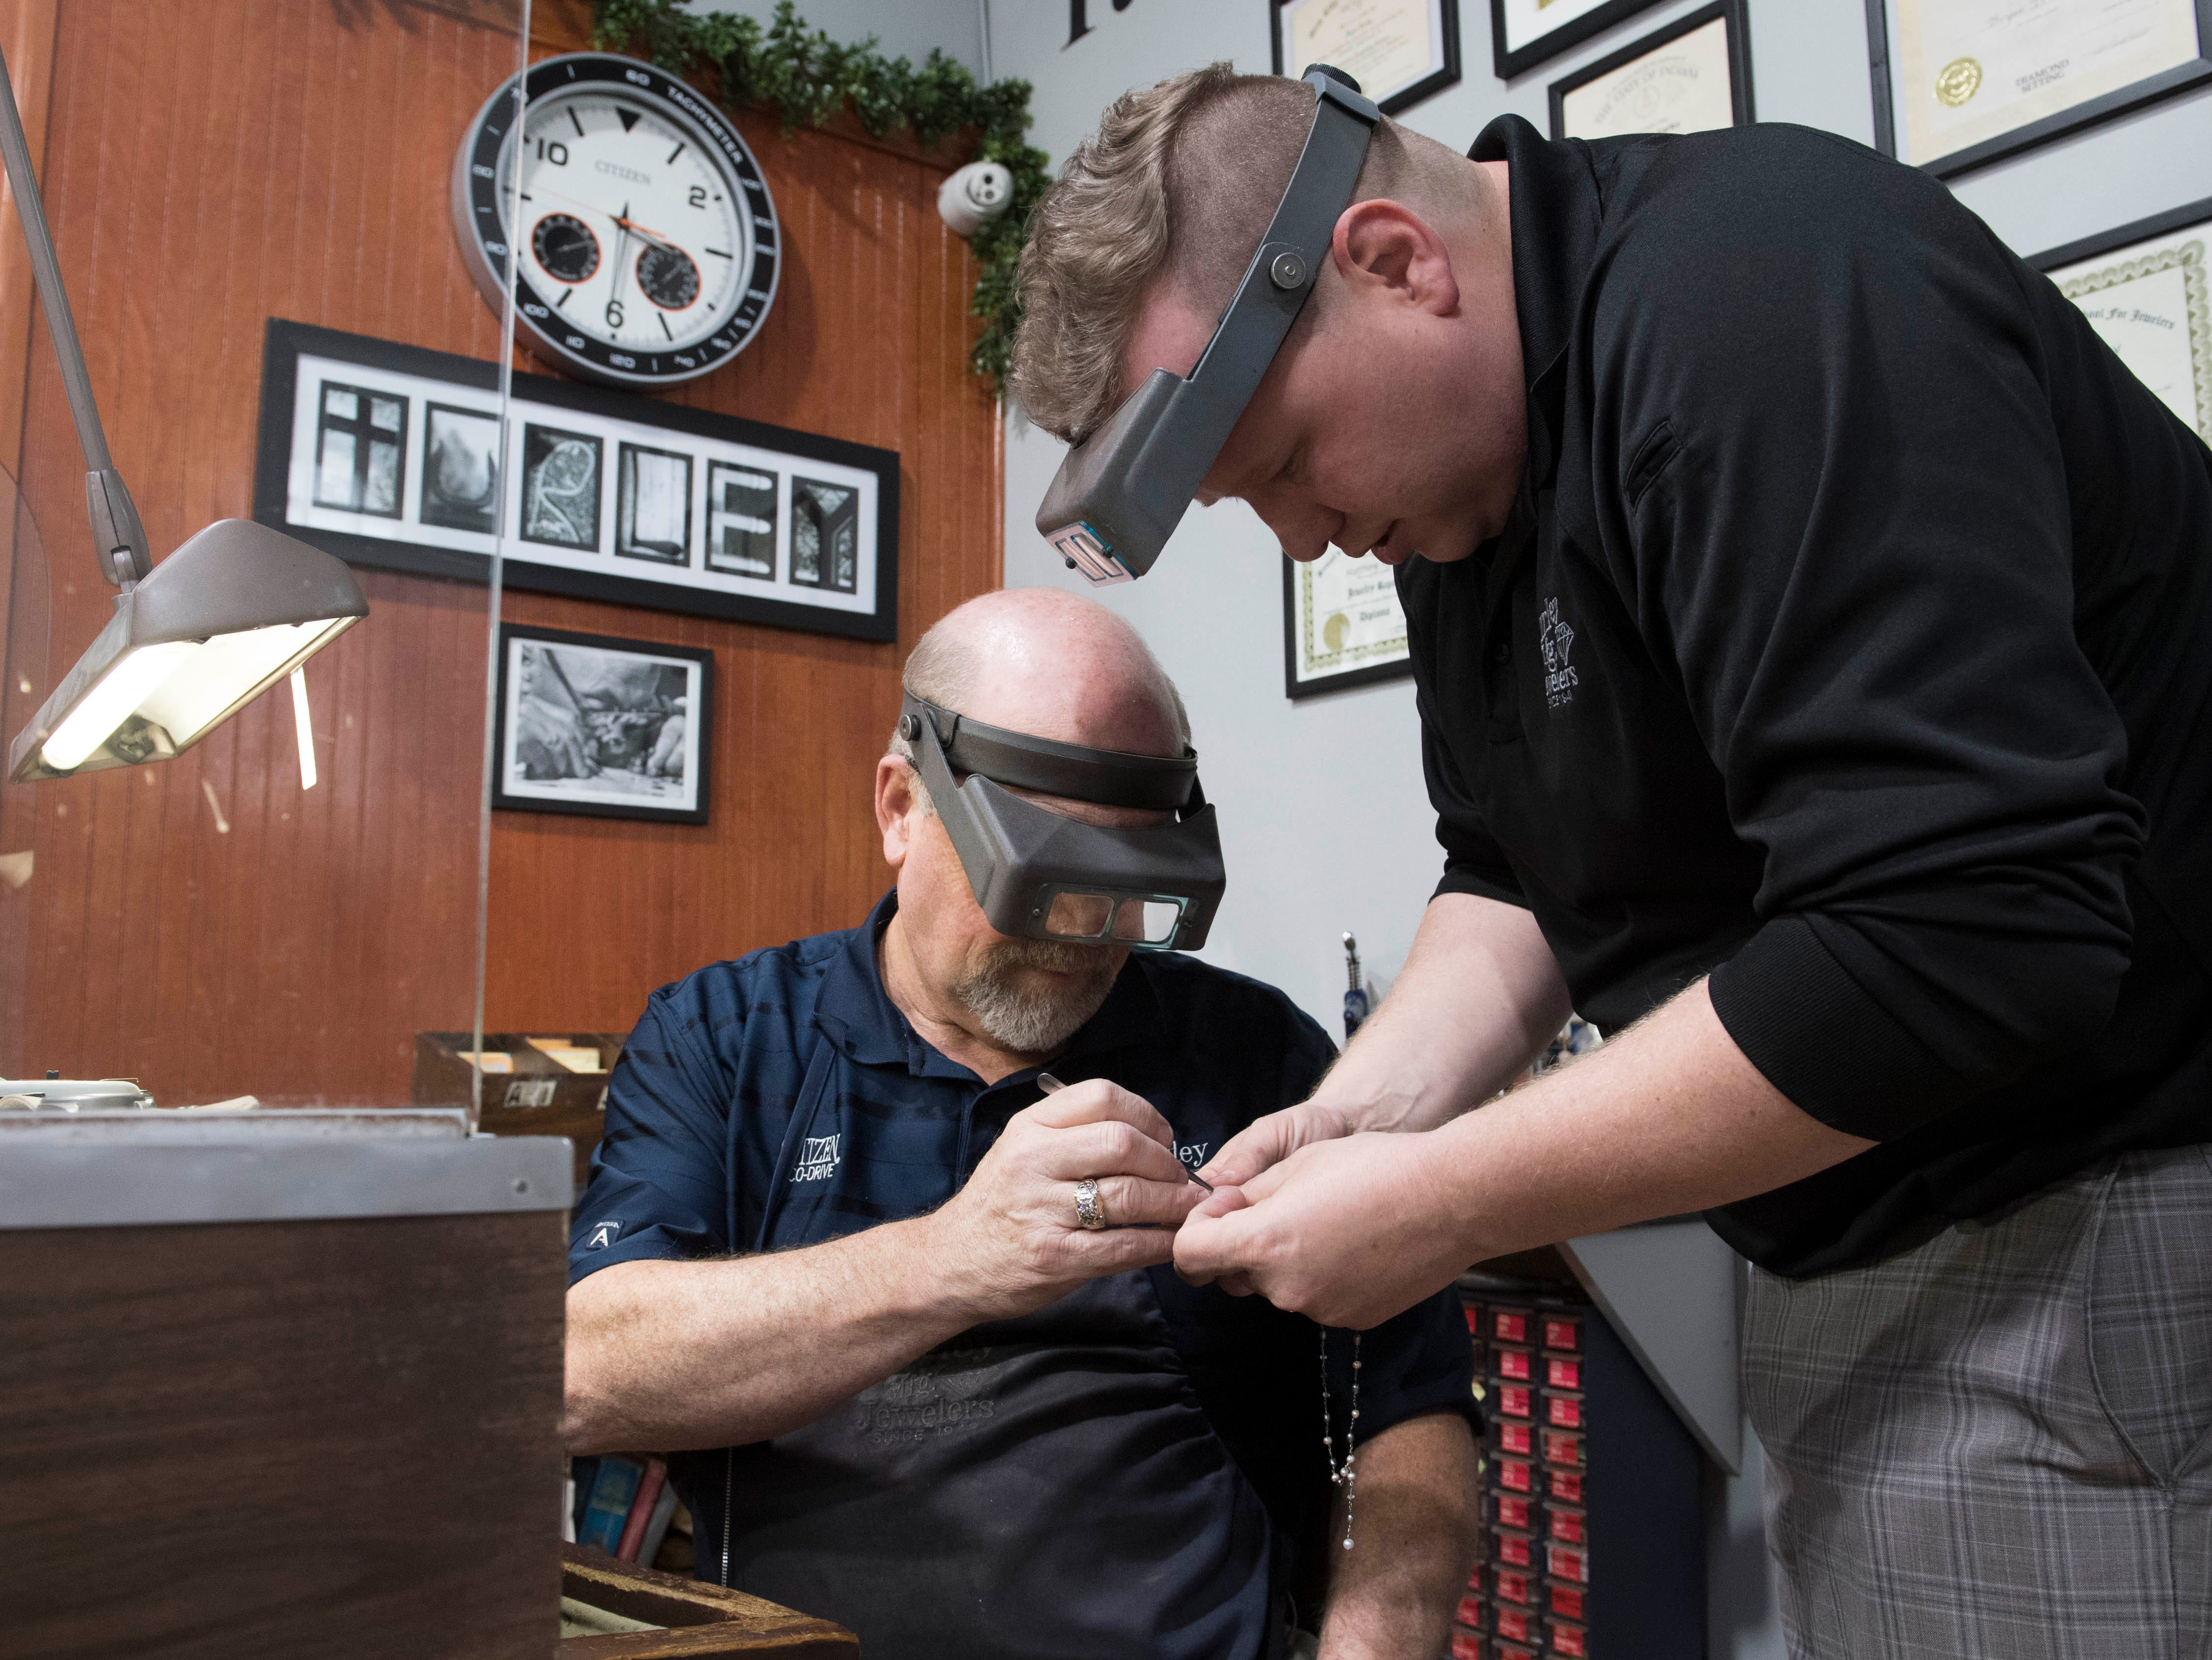 Bryan Turley, left, guides his son Matthew Turley, right, through a repair on a necklace Thursday, April 11, 2019.  Turley Mfg. Jewelers is a third generation family own jewelry store in its 71st year in Downtown Evansville, Indiana.